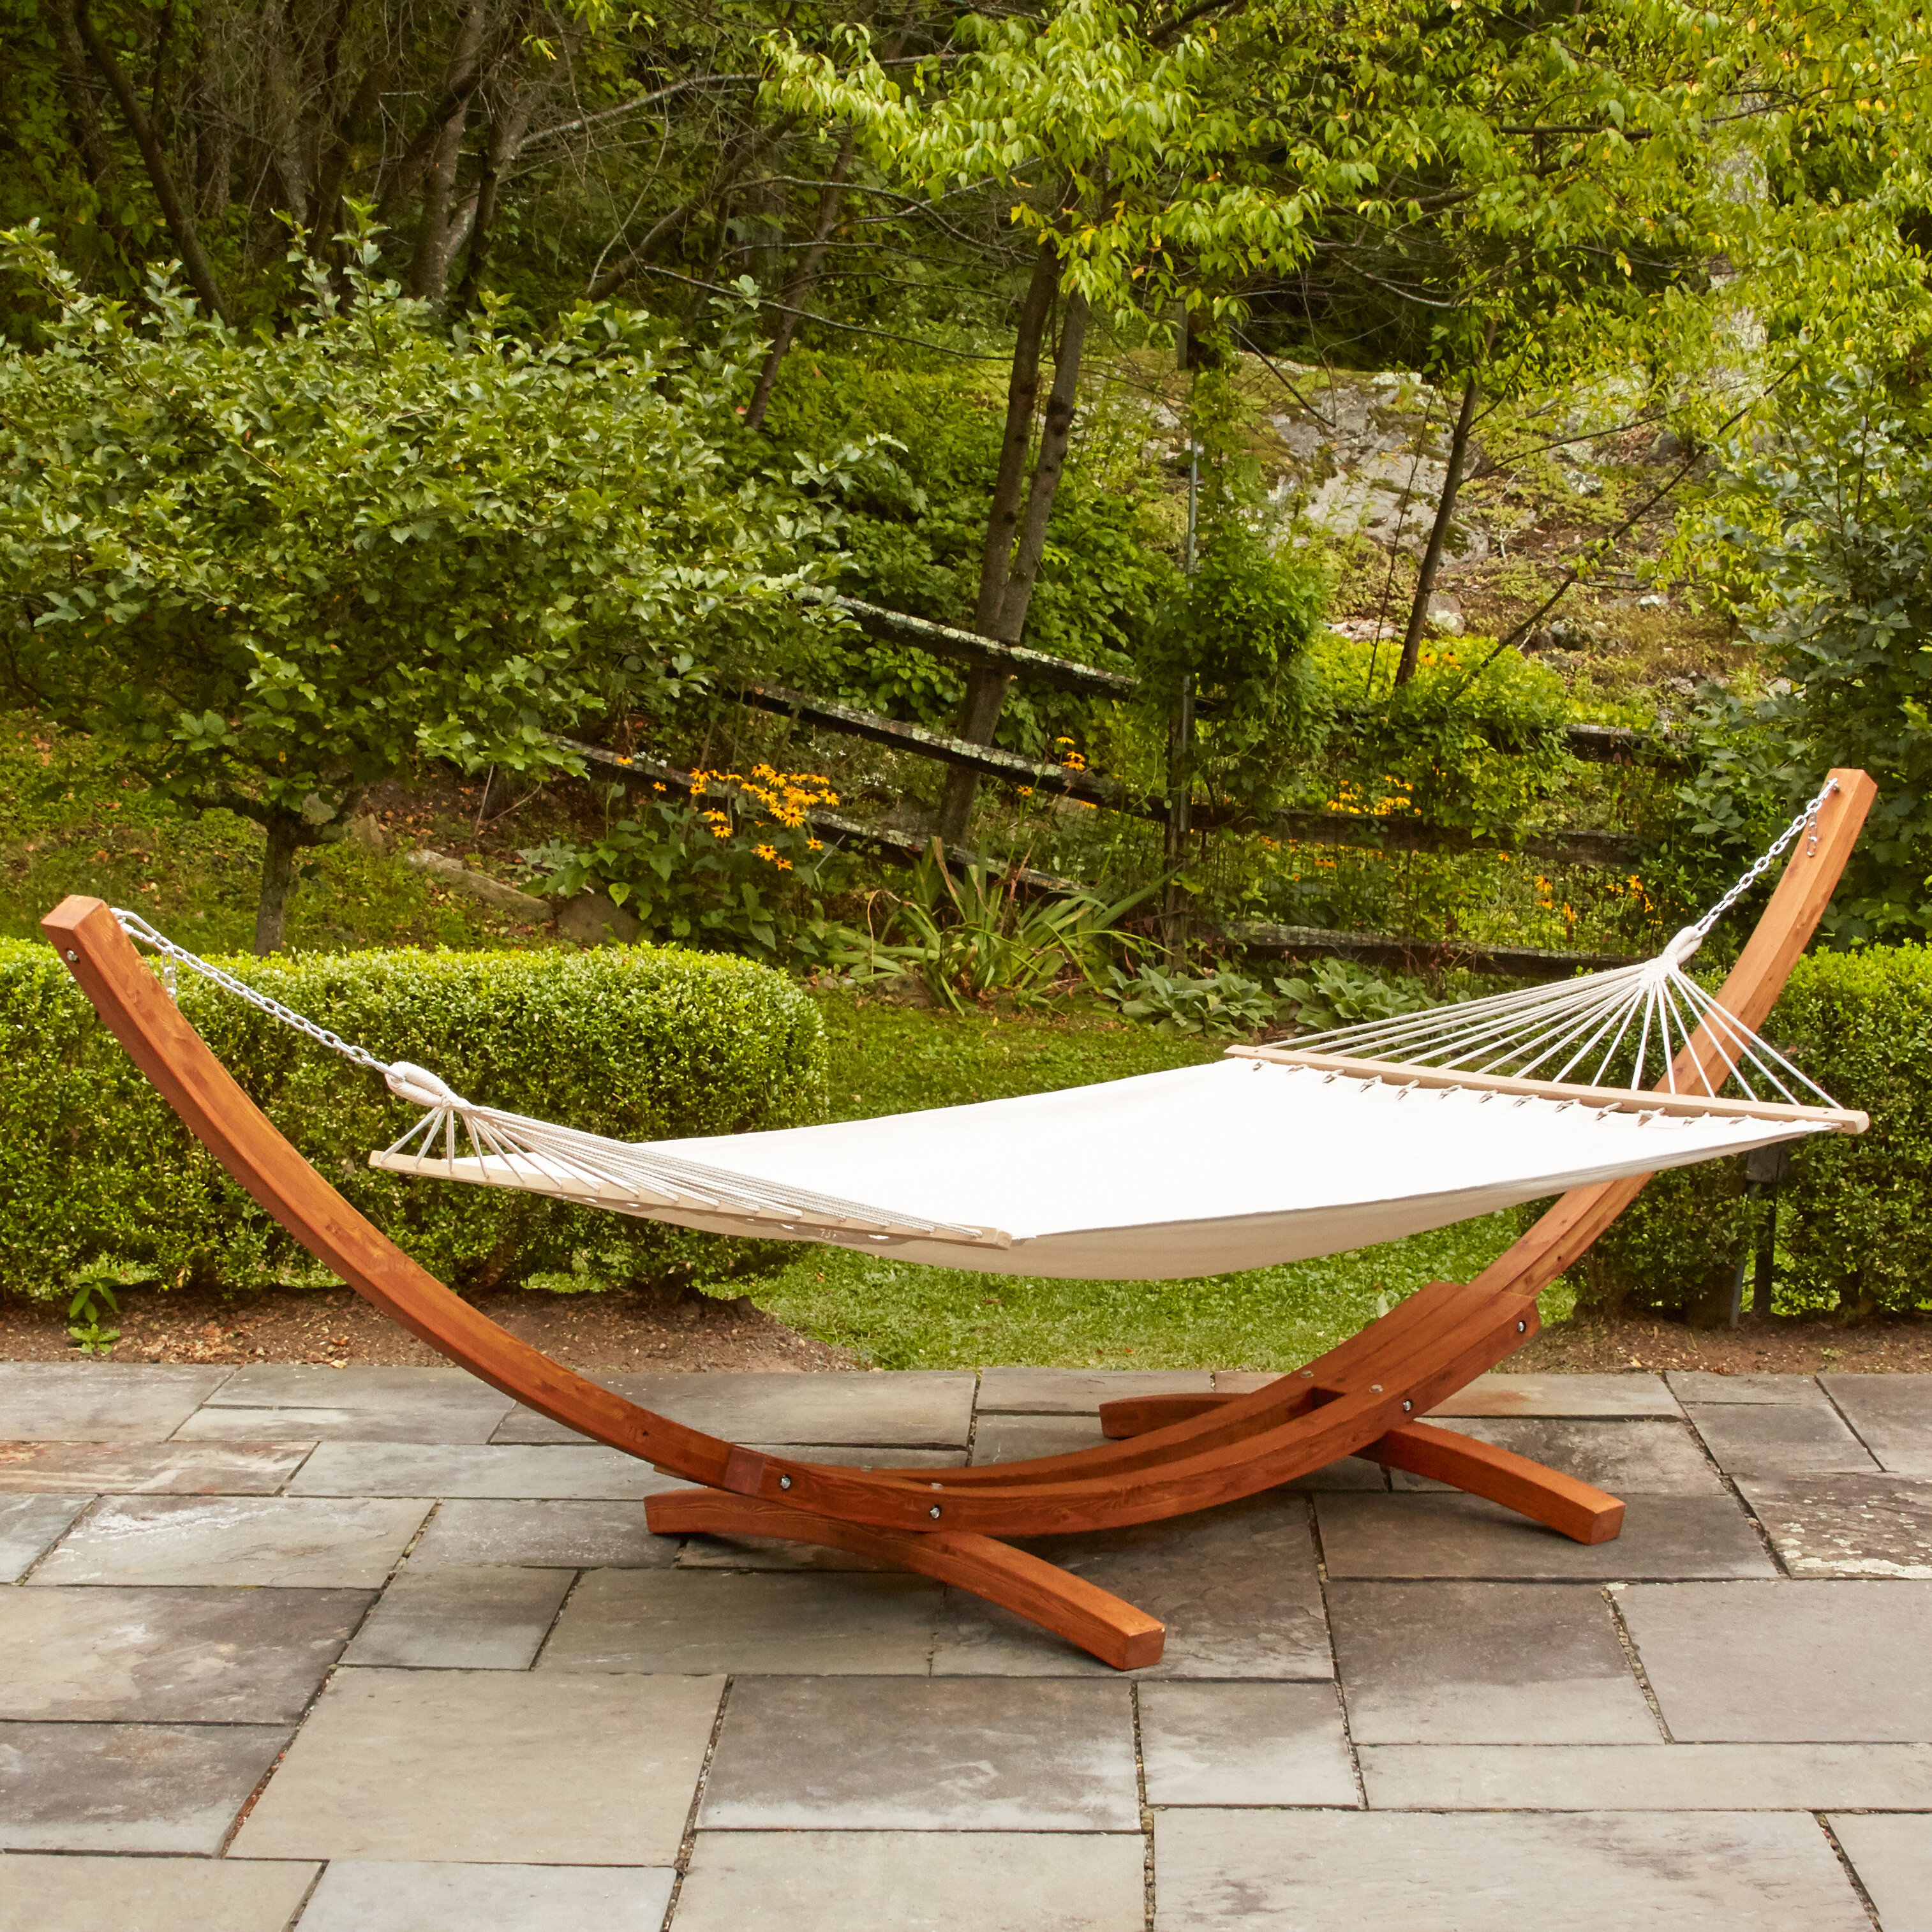 accessories with and earth single novica yucatan outdoor woven pdx indoor mayan nylon striped of hand person the artists hangers hammock included tones comfortable